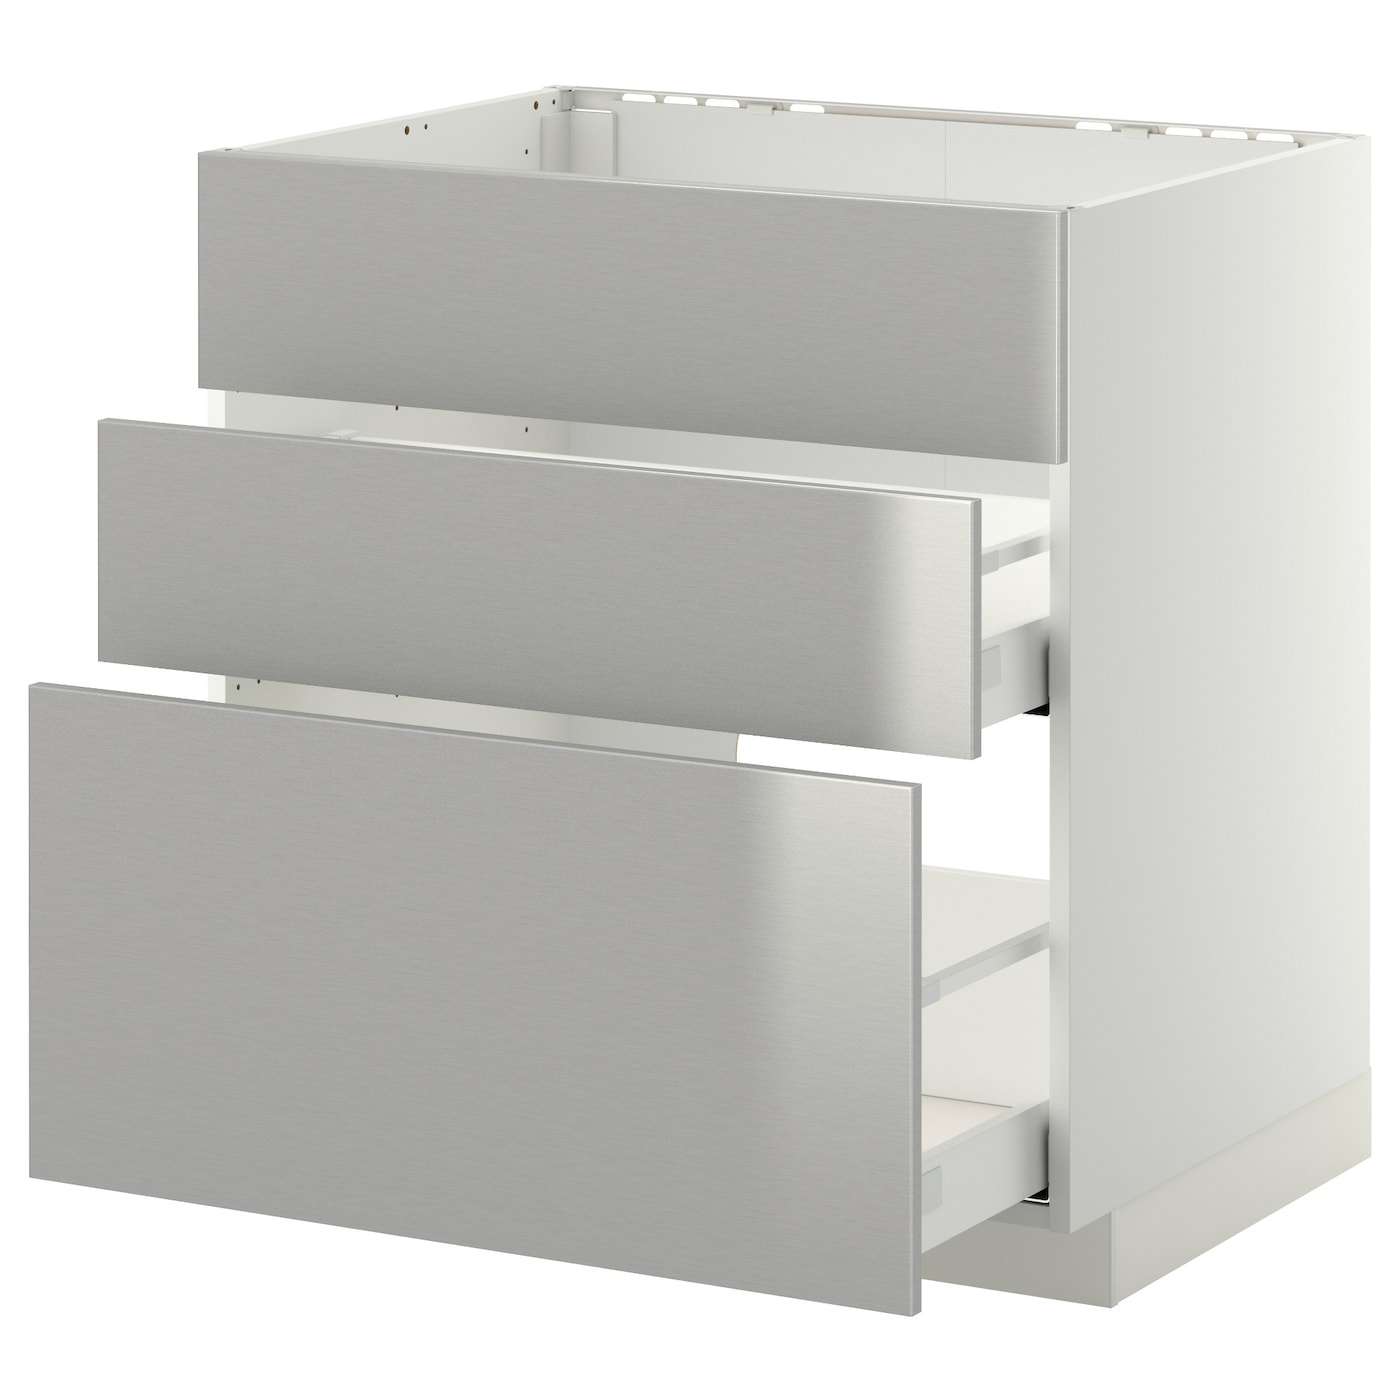 drawer fronts for kitchen cabinets metod maximera base cab f sink 3 fronts 2 drawers white 8824